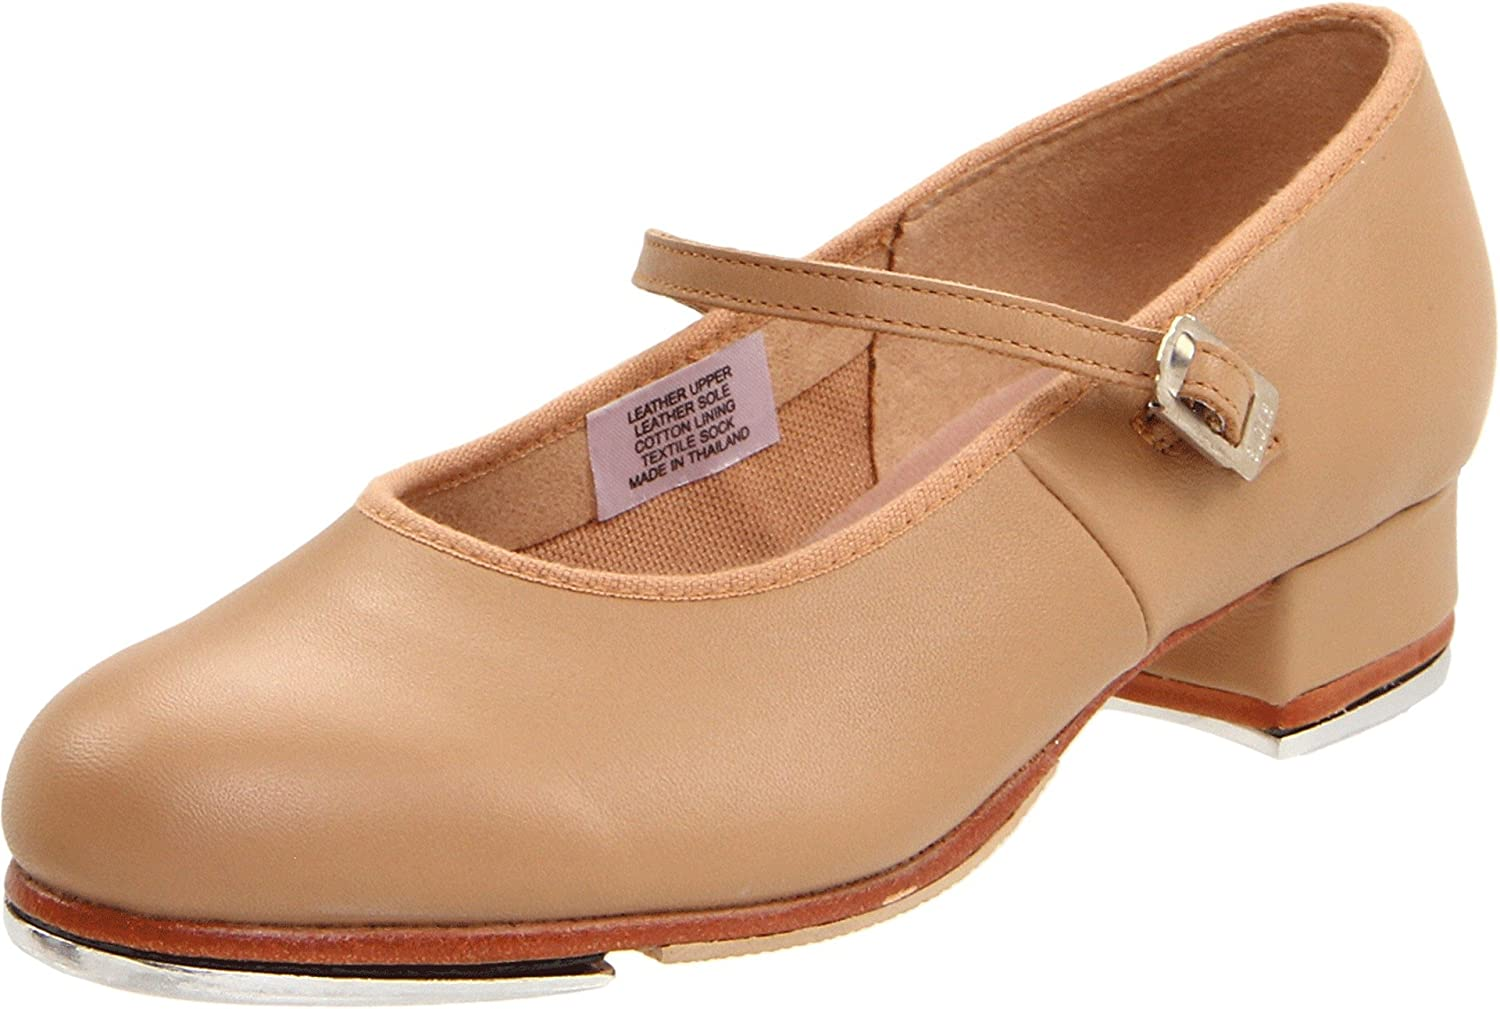 Bloch Dance Women's Tap On Tap Shoe B0041HYYN2 8.5 M US|Tan